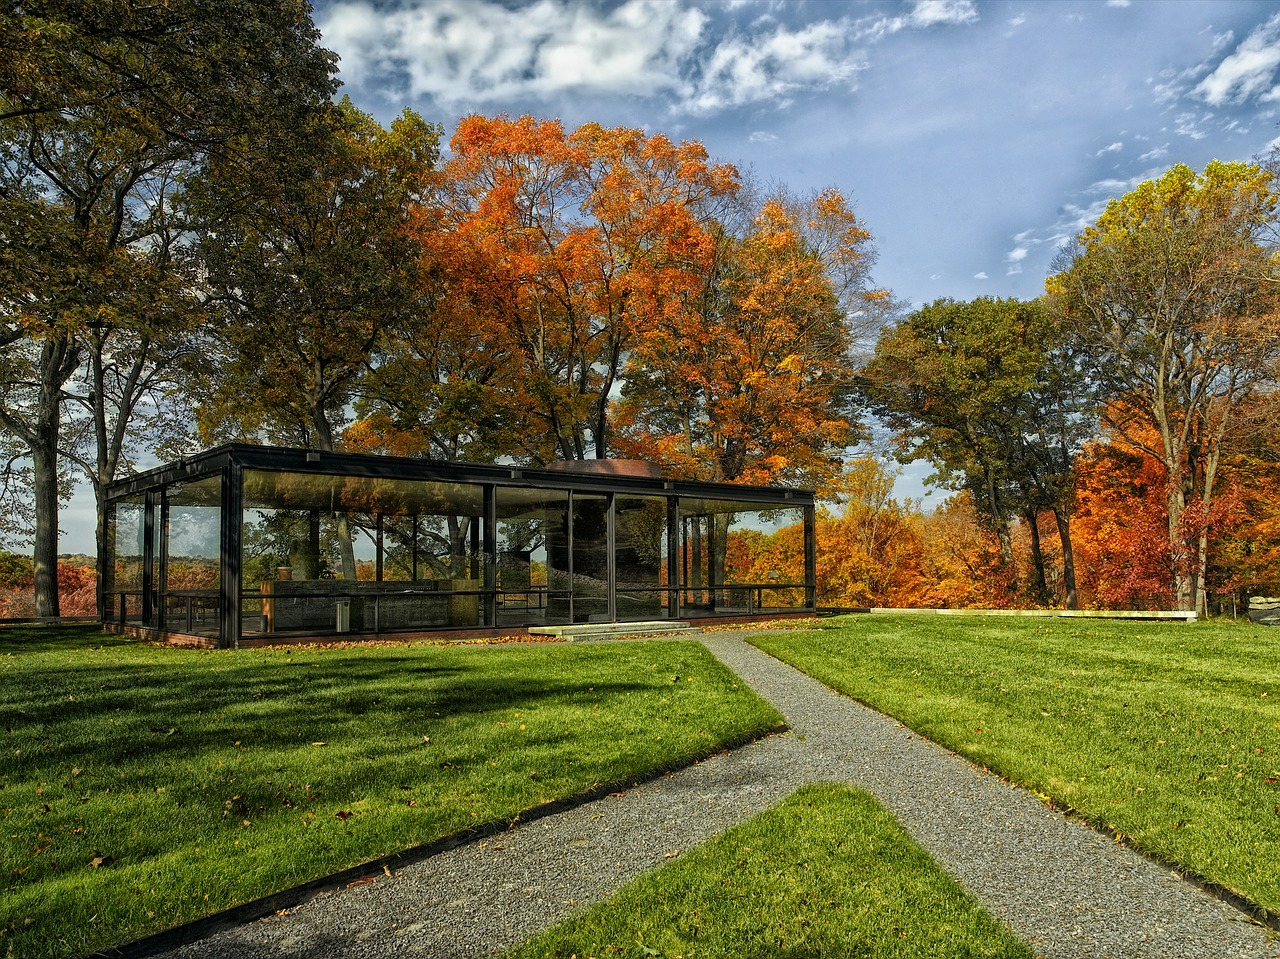 philip-johnson-glass-house-397833_1280